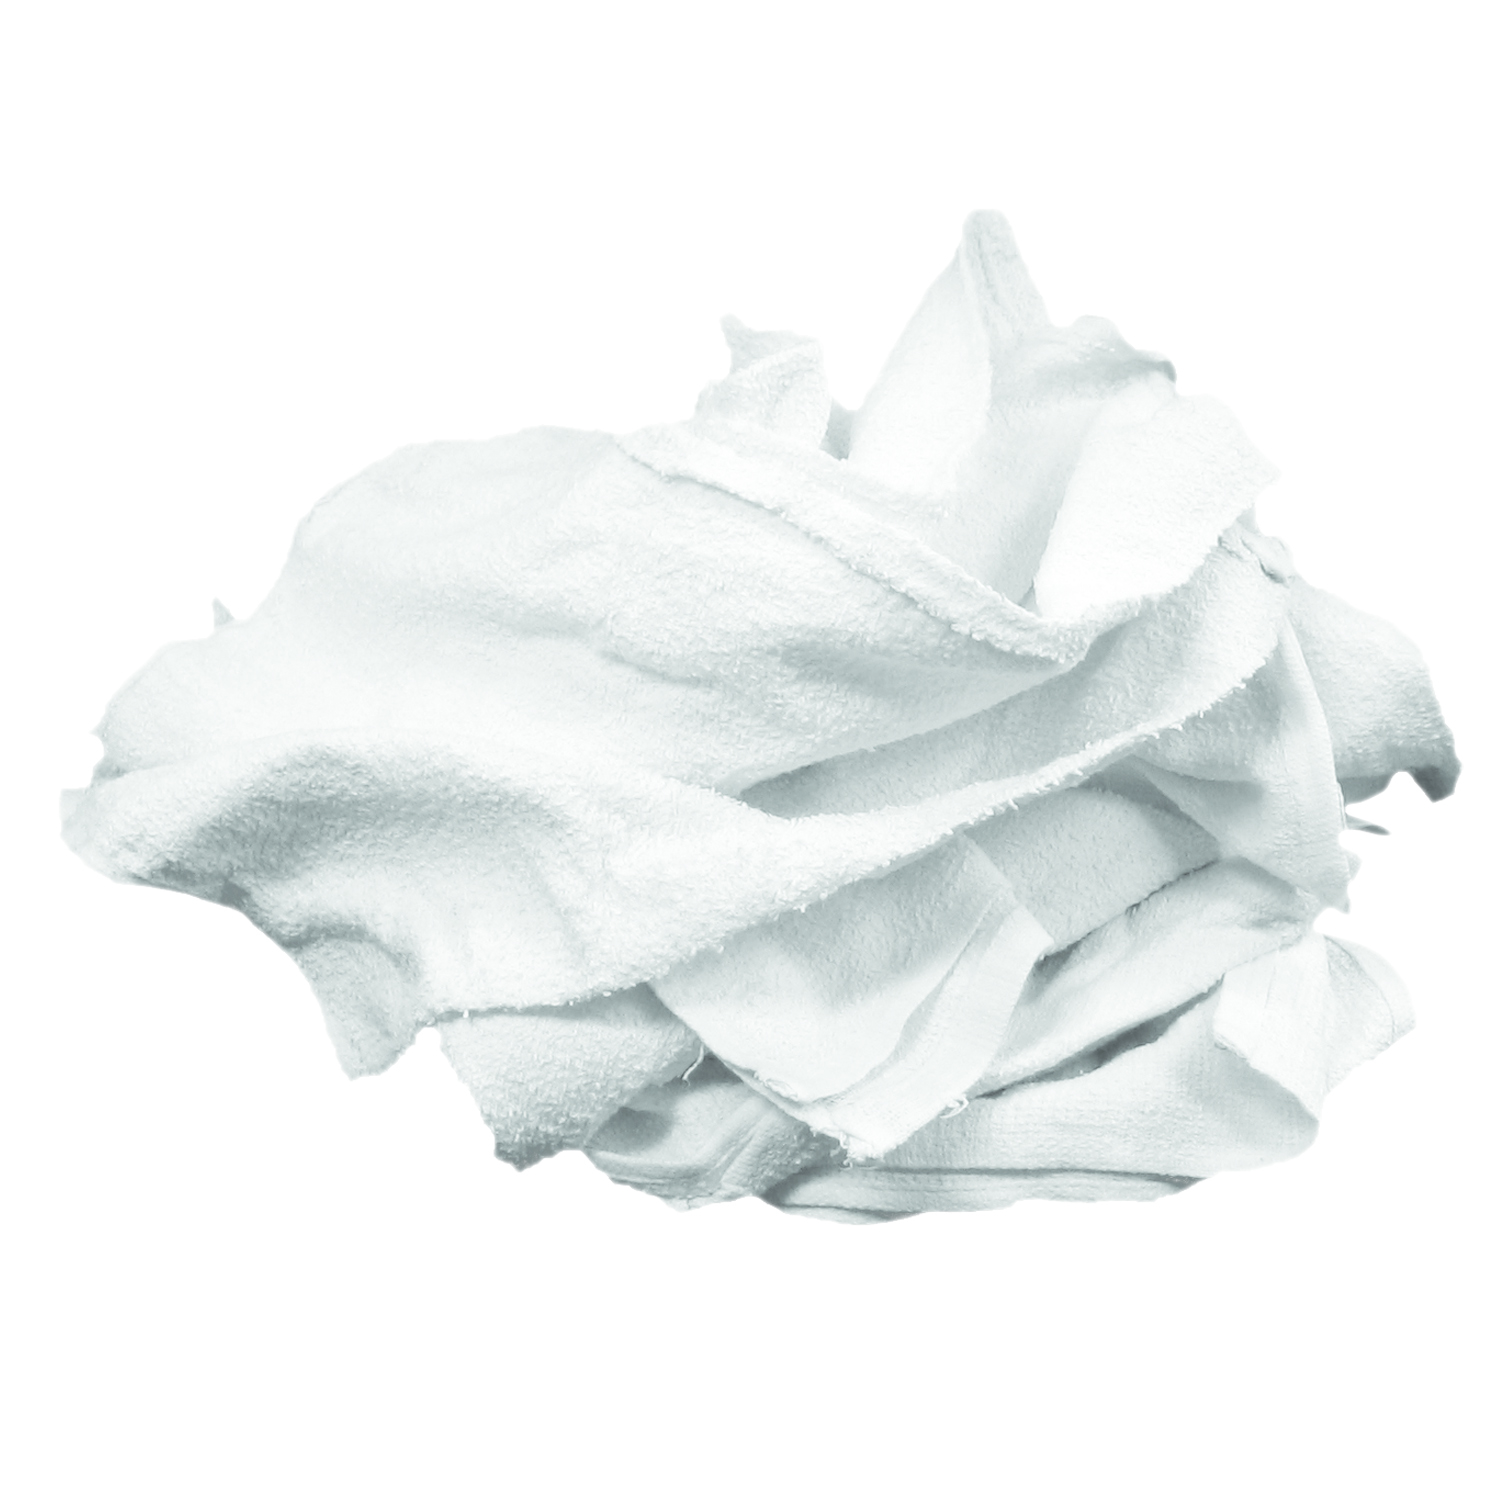 Hospital Specialty White 40lb New Turkish Hand Wiping Rag 533-40/800-40